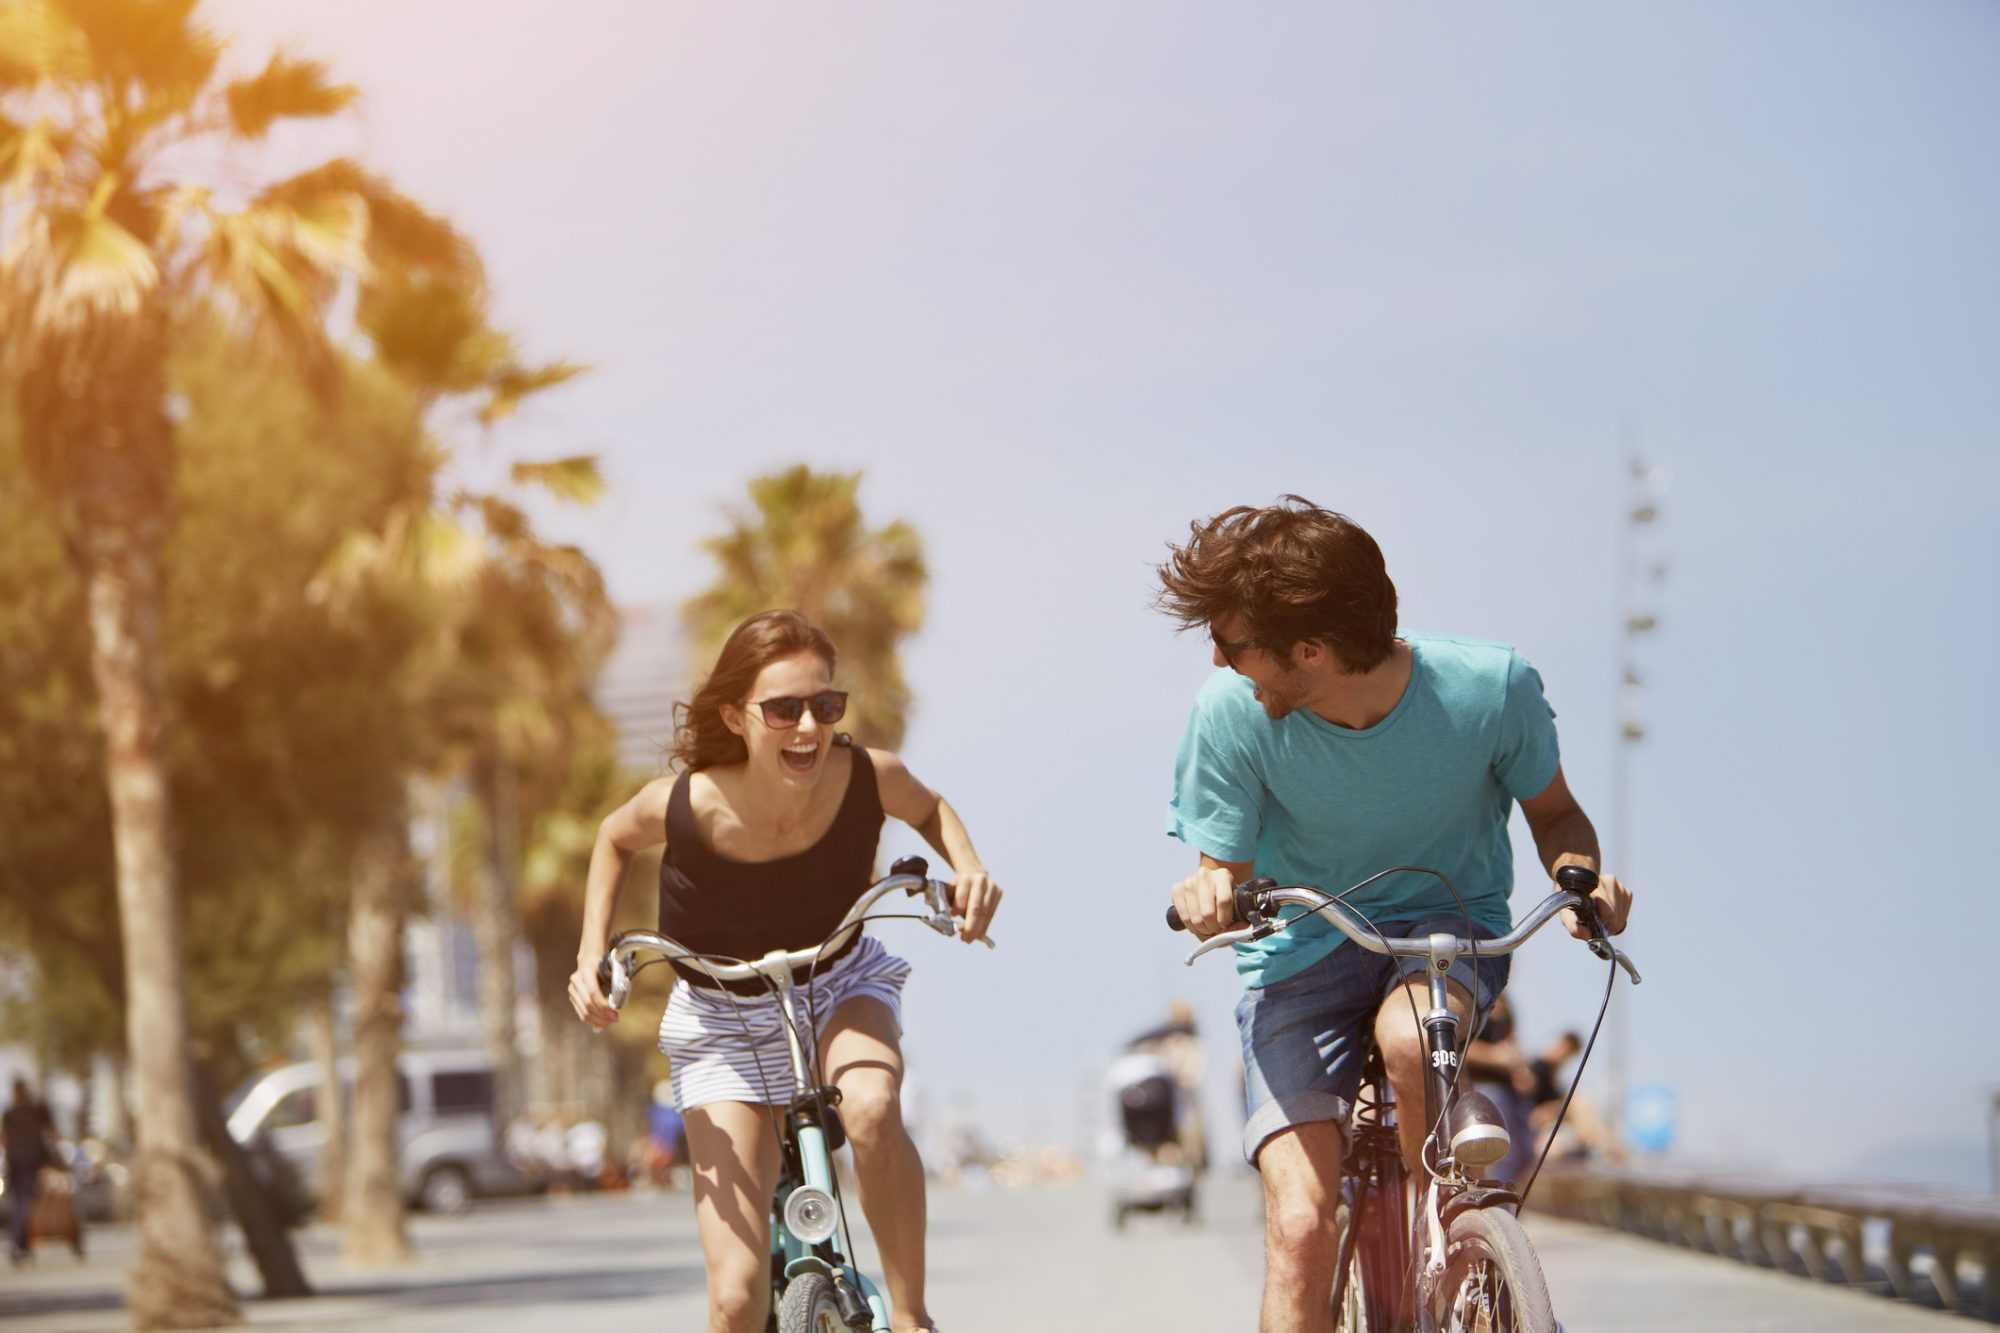 Happy young woman chasing man while riding bicycle during summer vacation